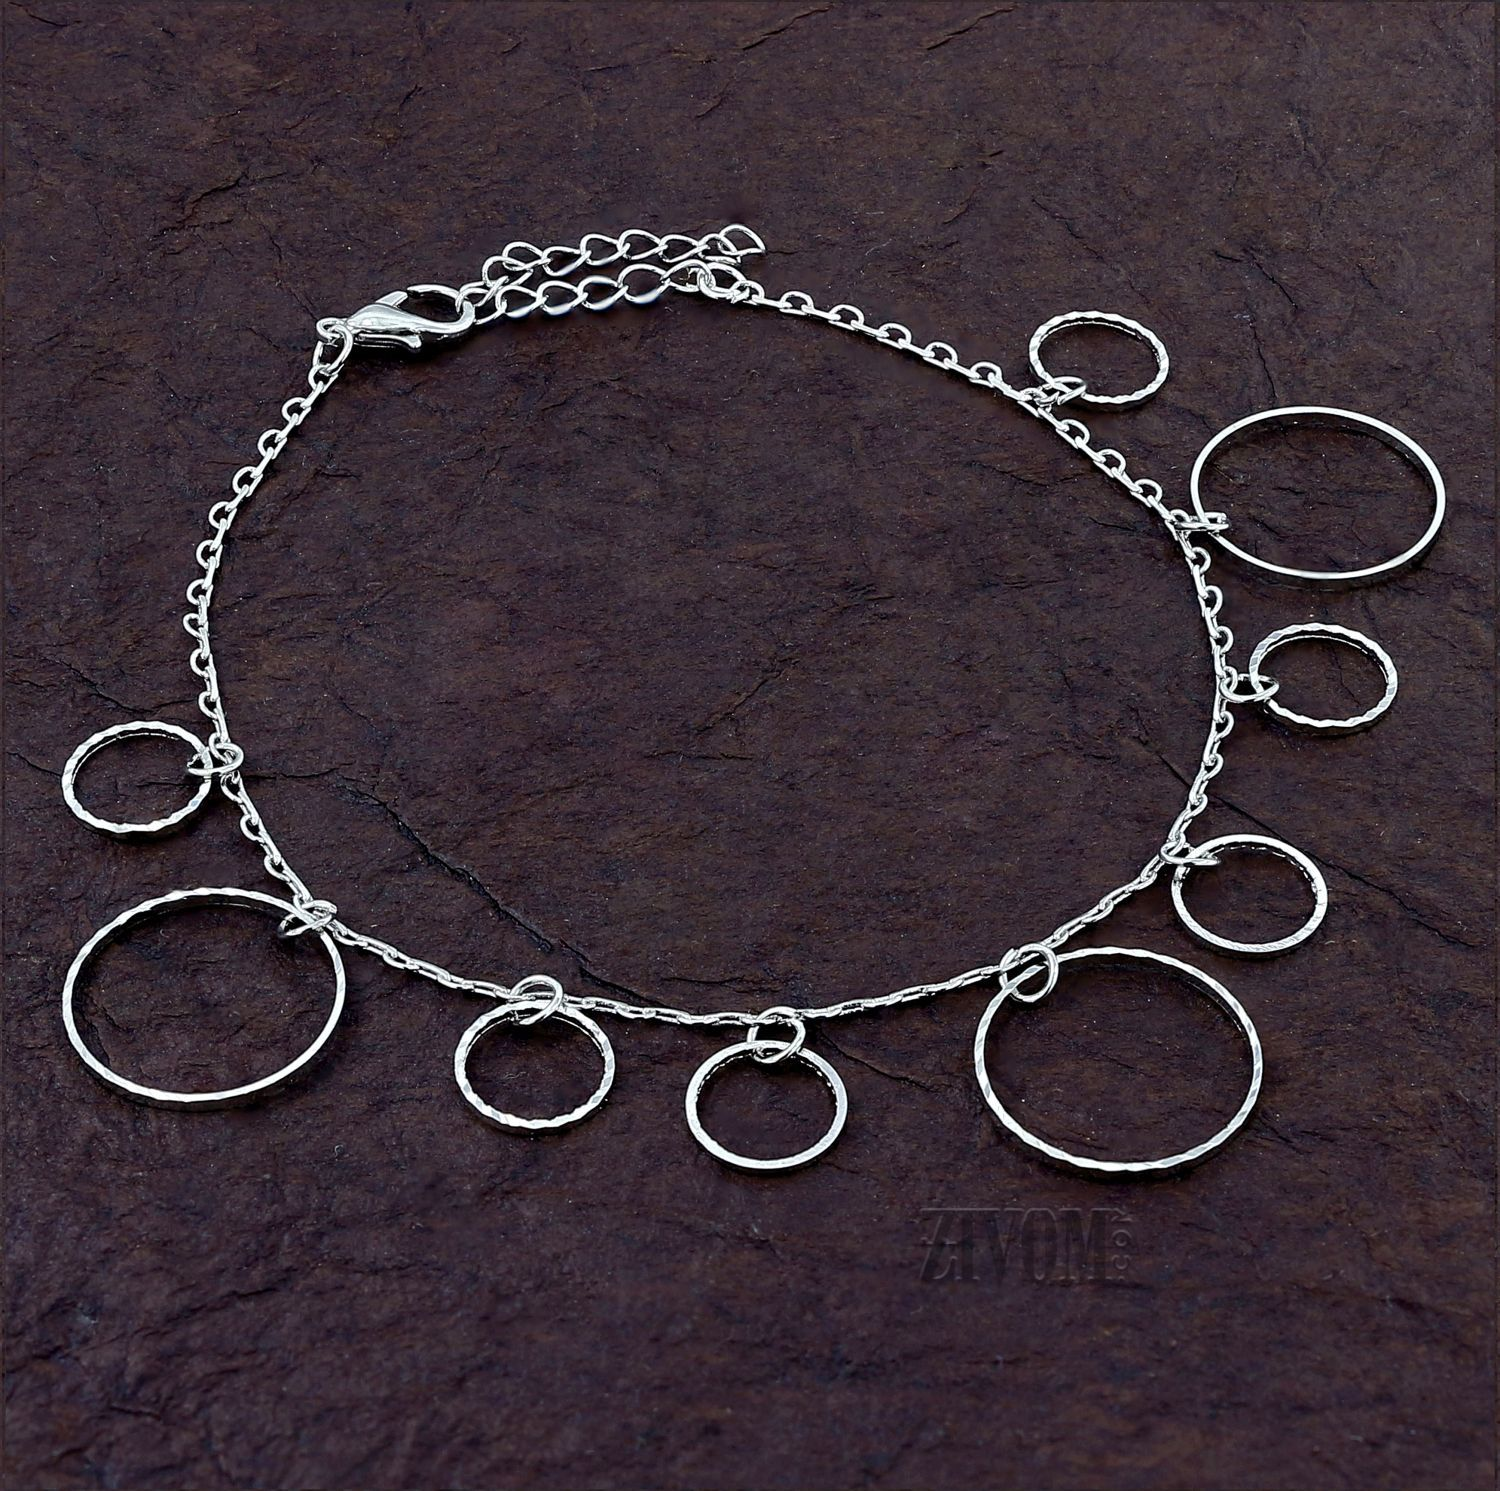 Zivom® Rings Stylish Indo Western Dainty Delicate Charms Single Leg Anklet Payal for Women Girls